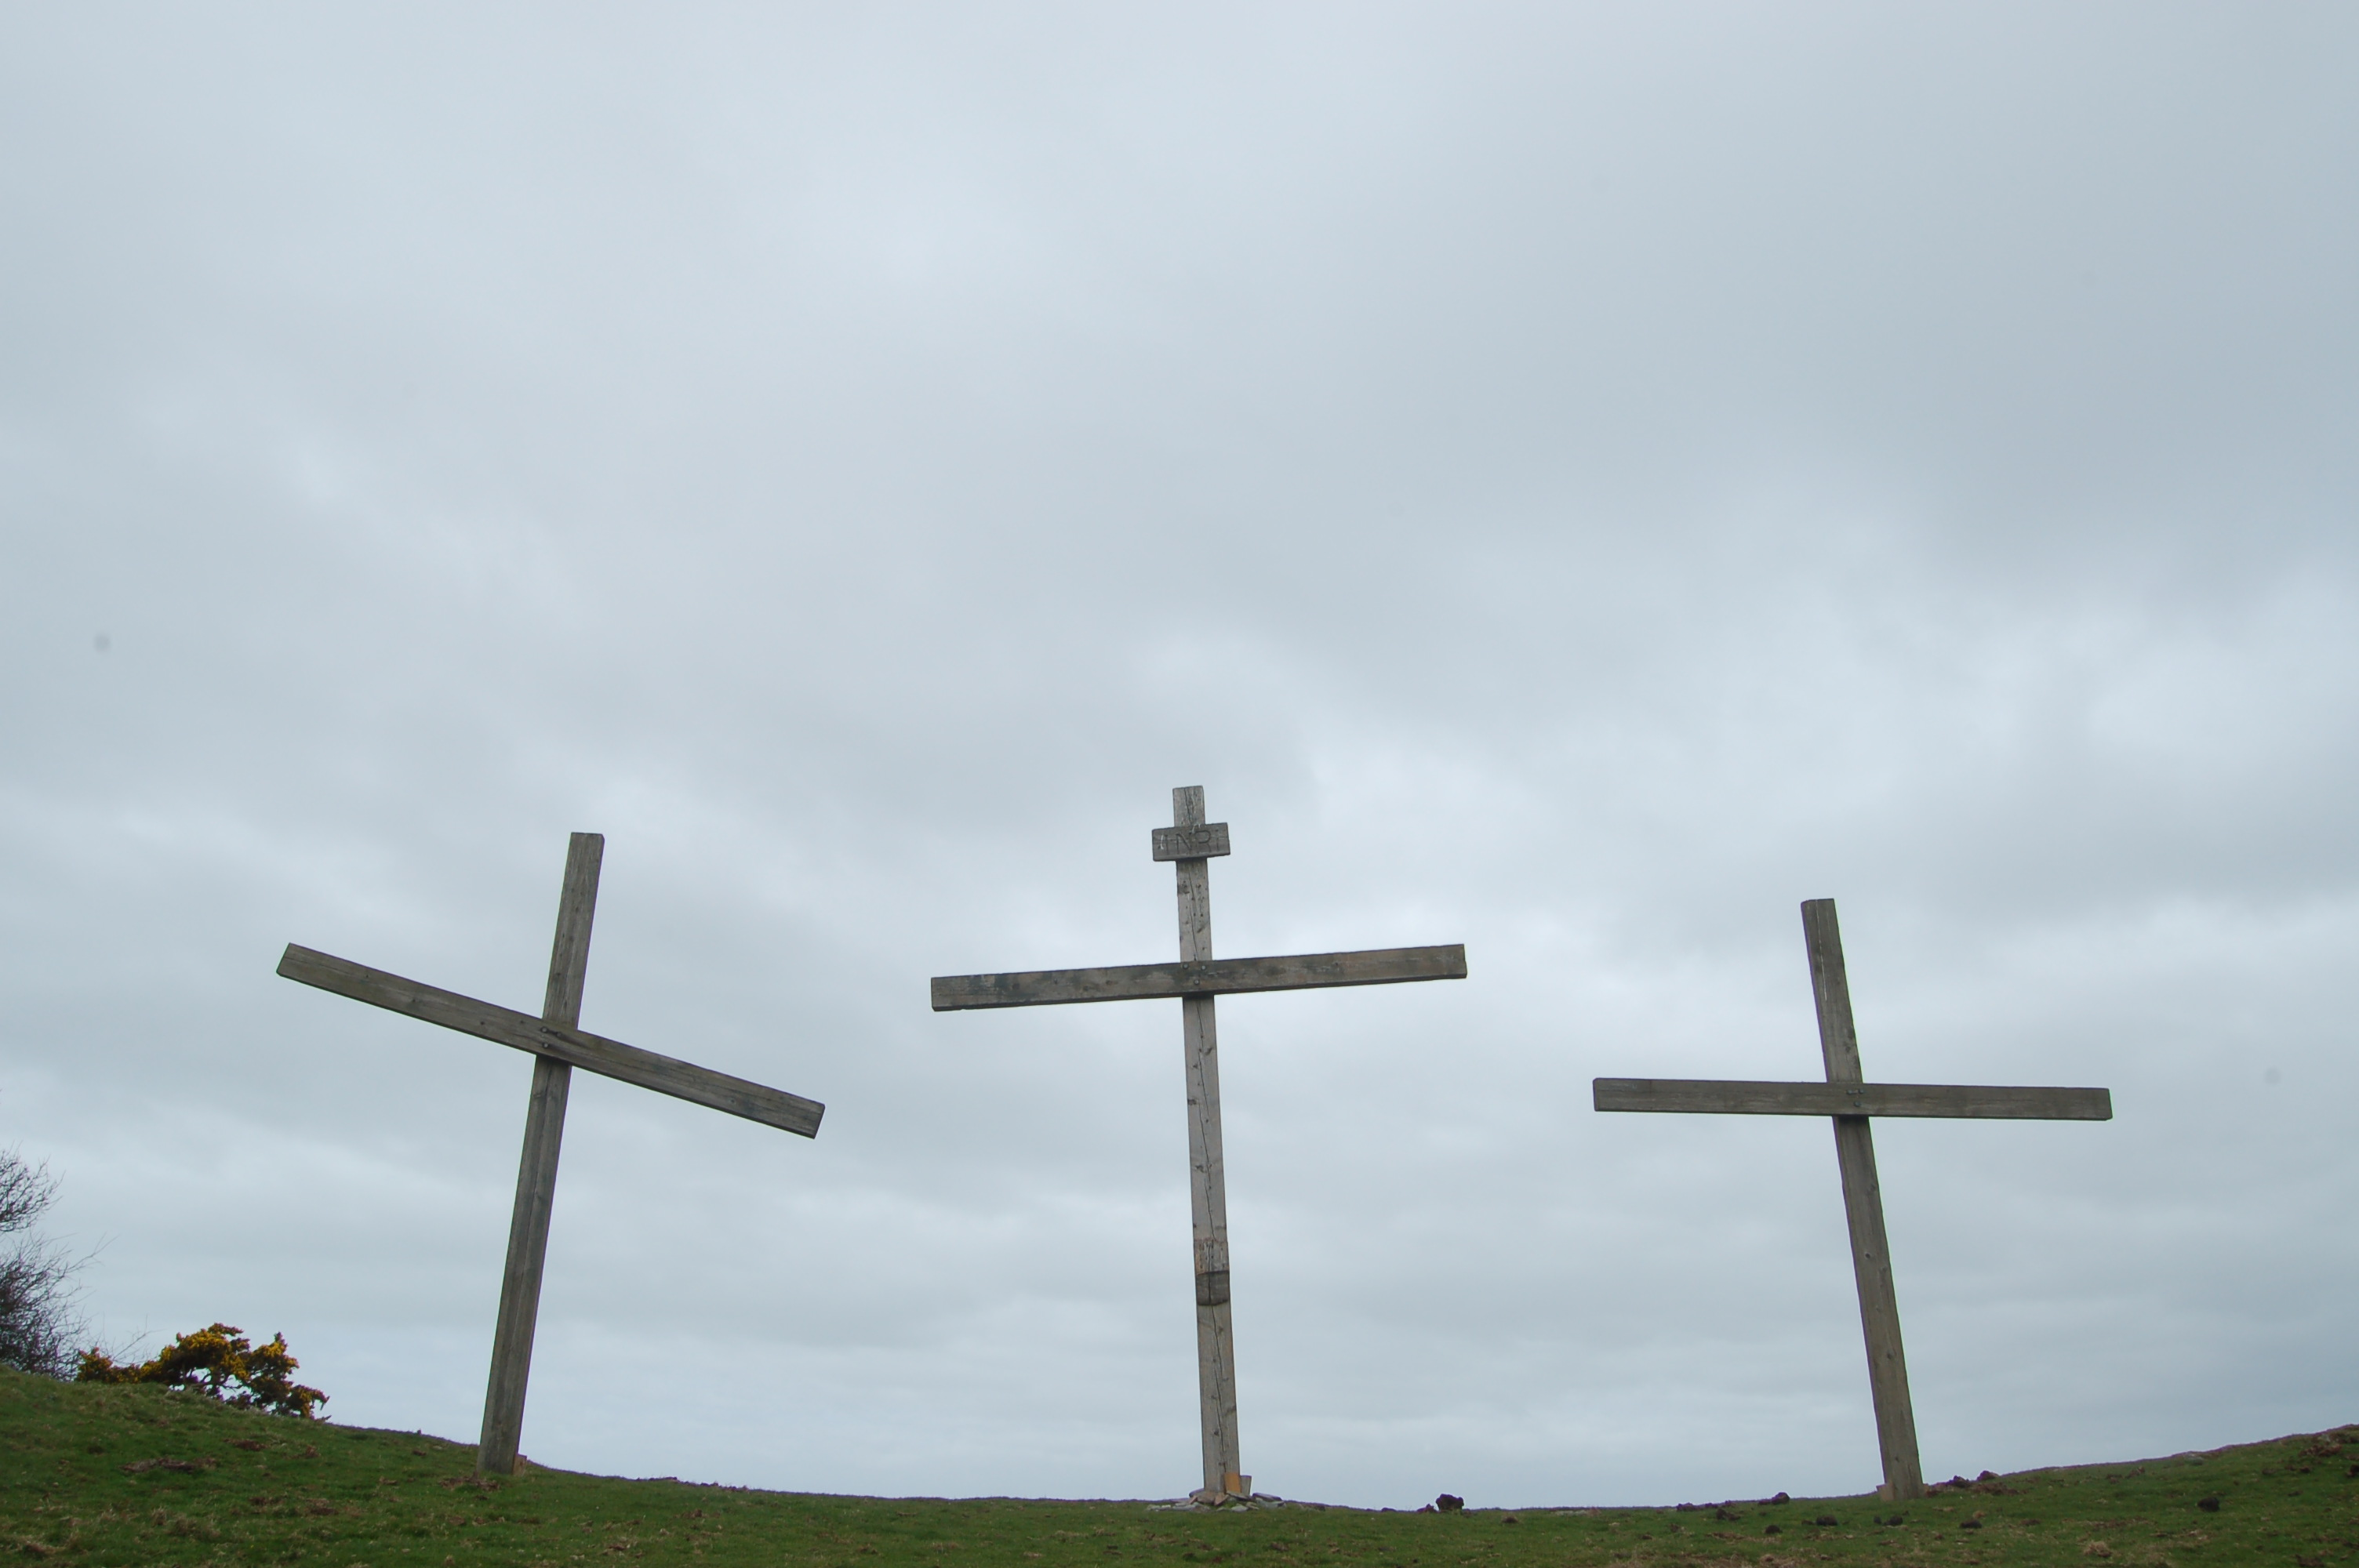 The Three Crosses at Lee Abbey set against a background of sky